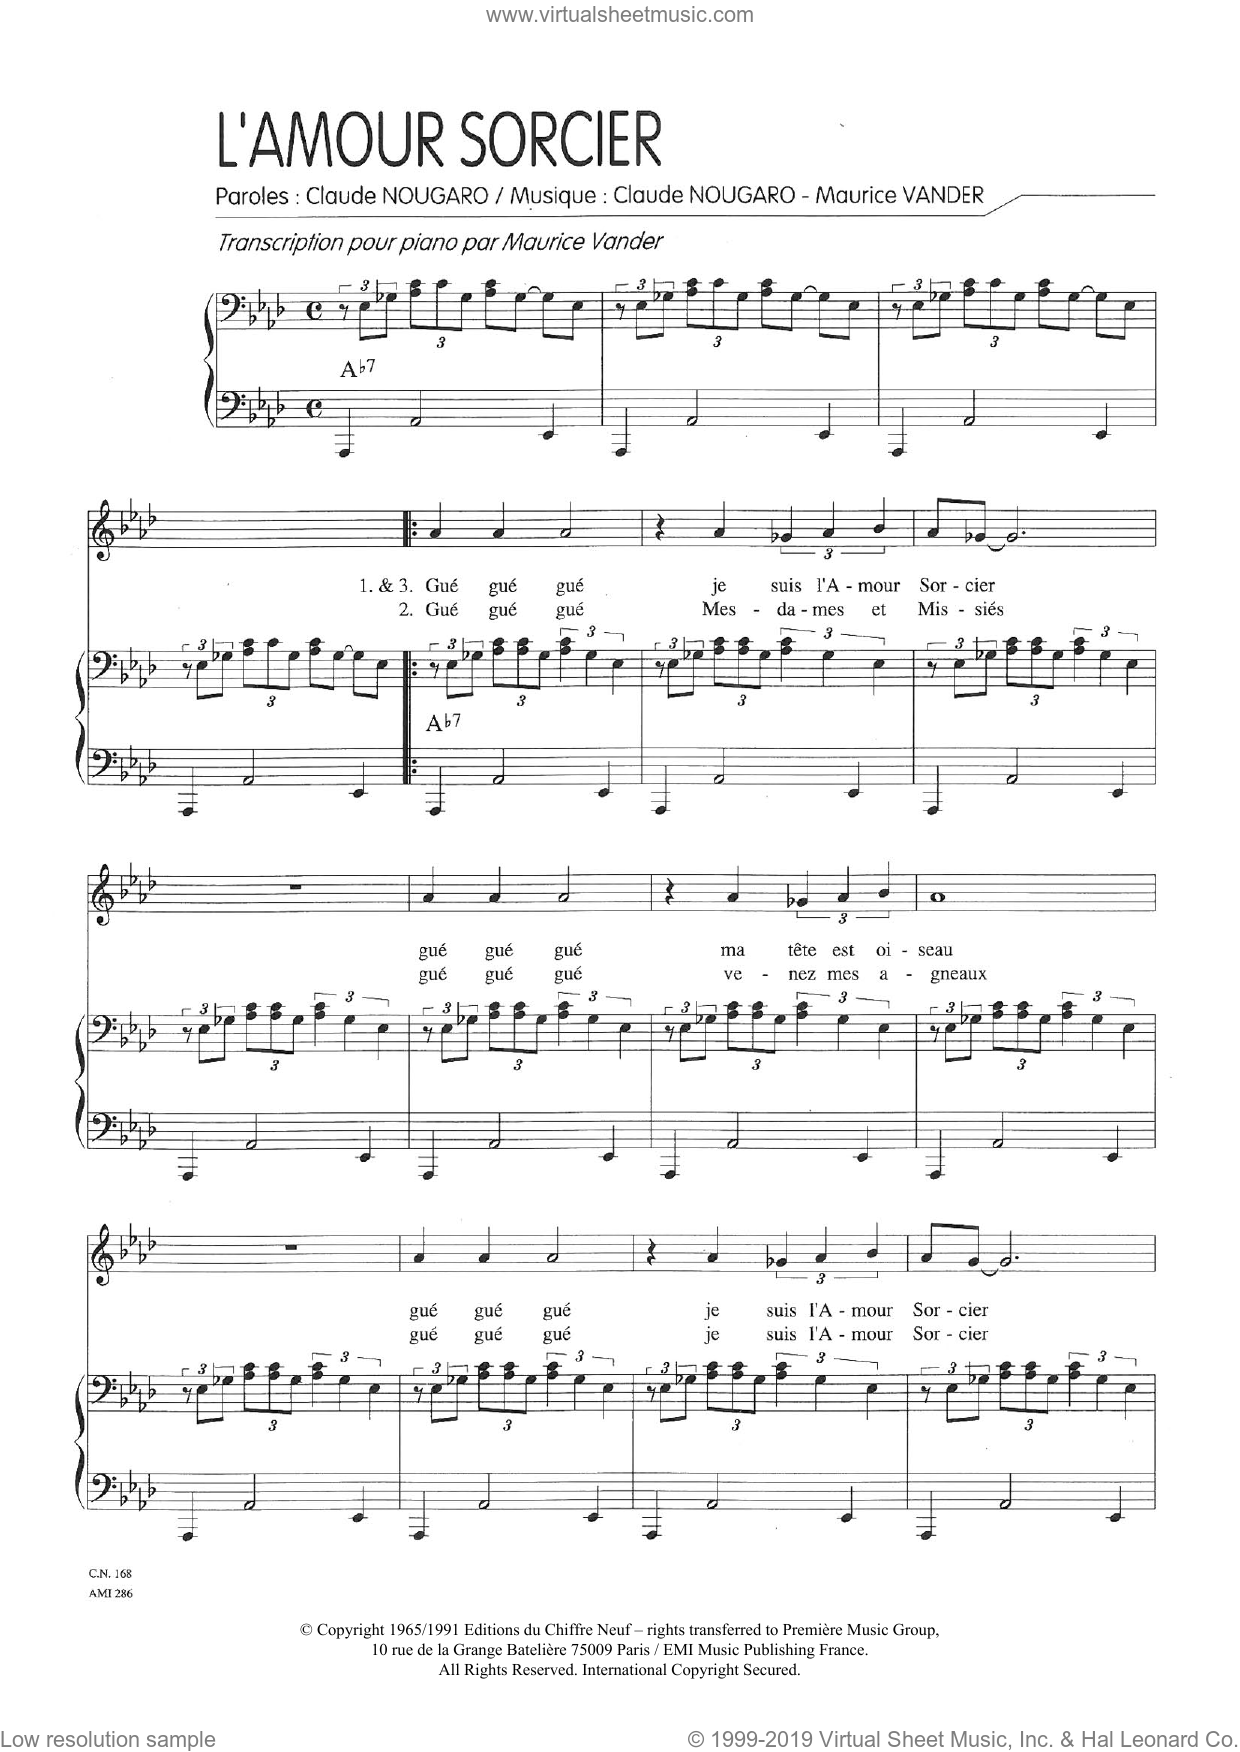 Amour Sorcier sheet music for voice and piano by Claude Nougaro, intermediate skill level